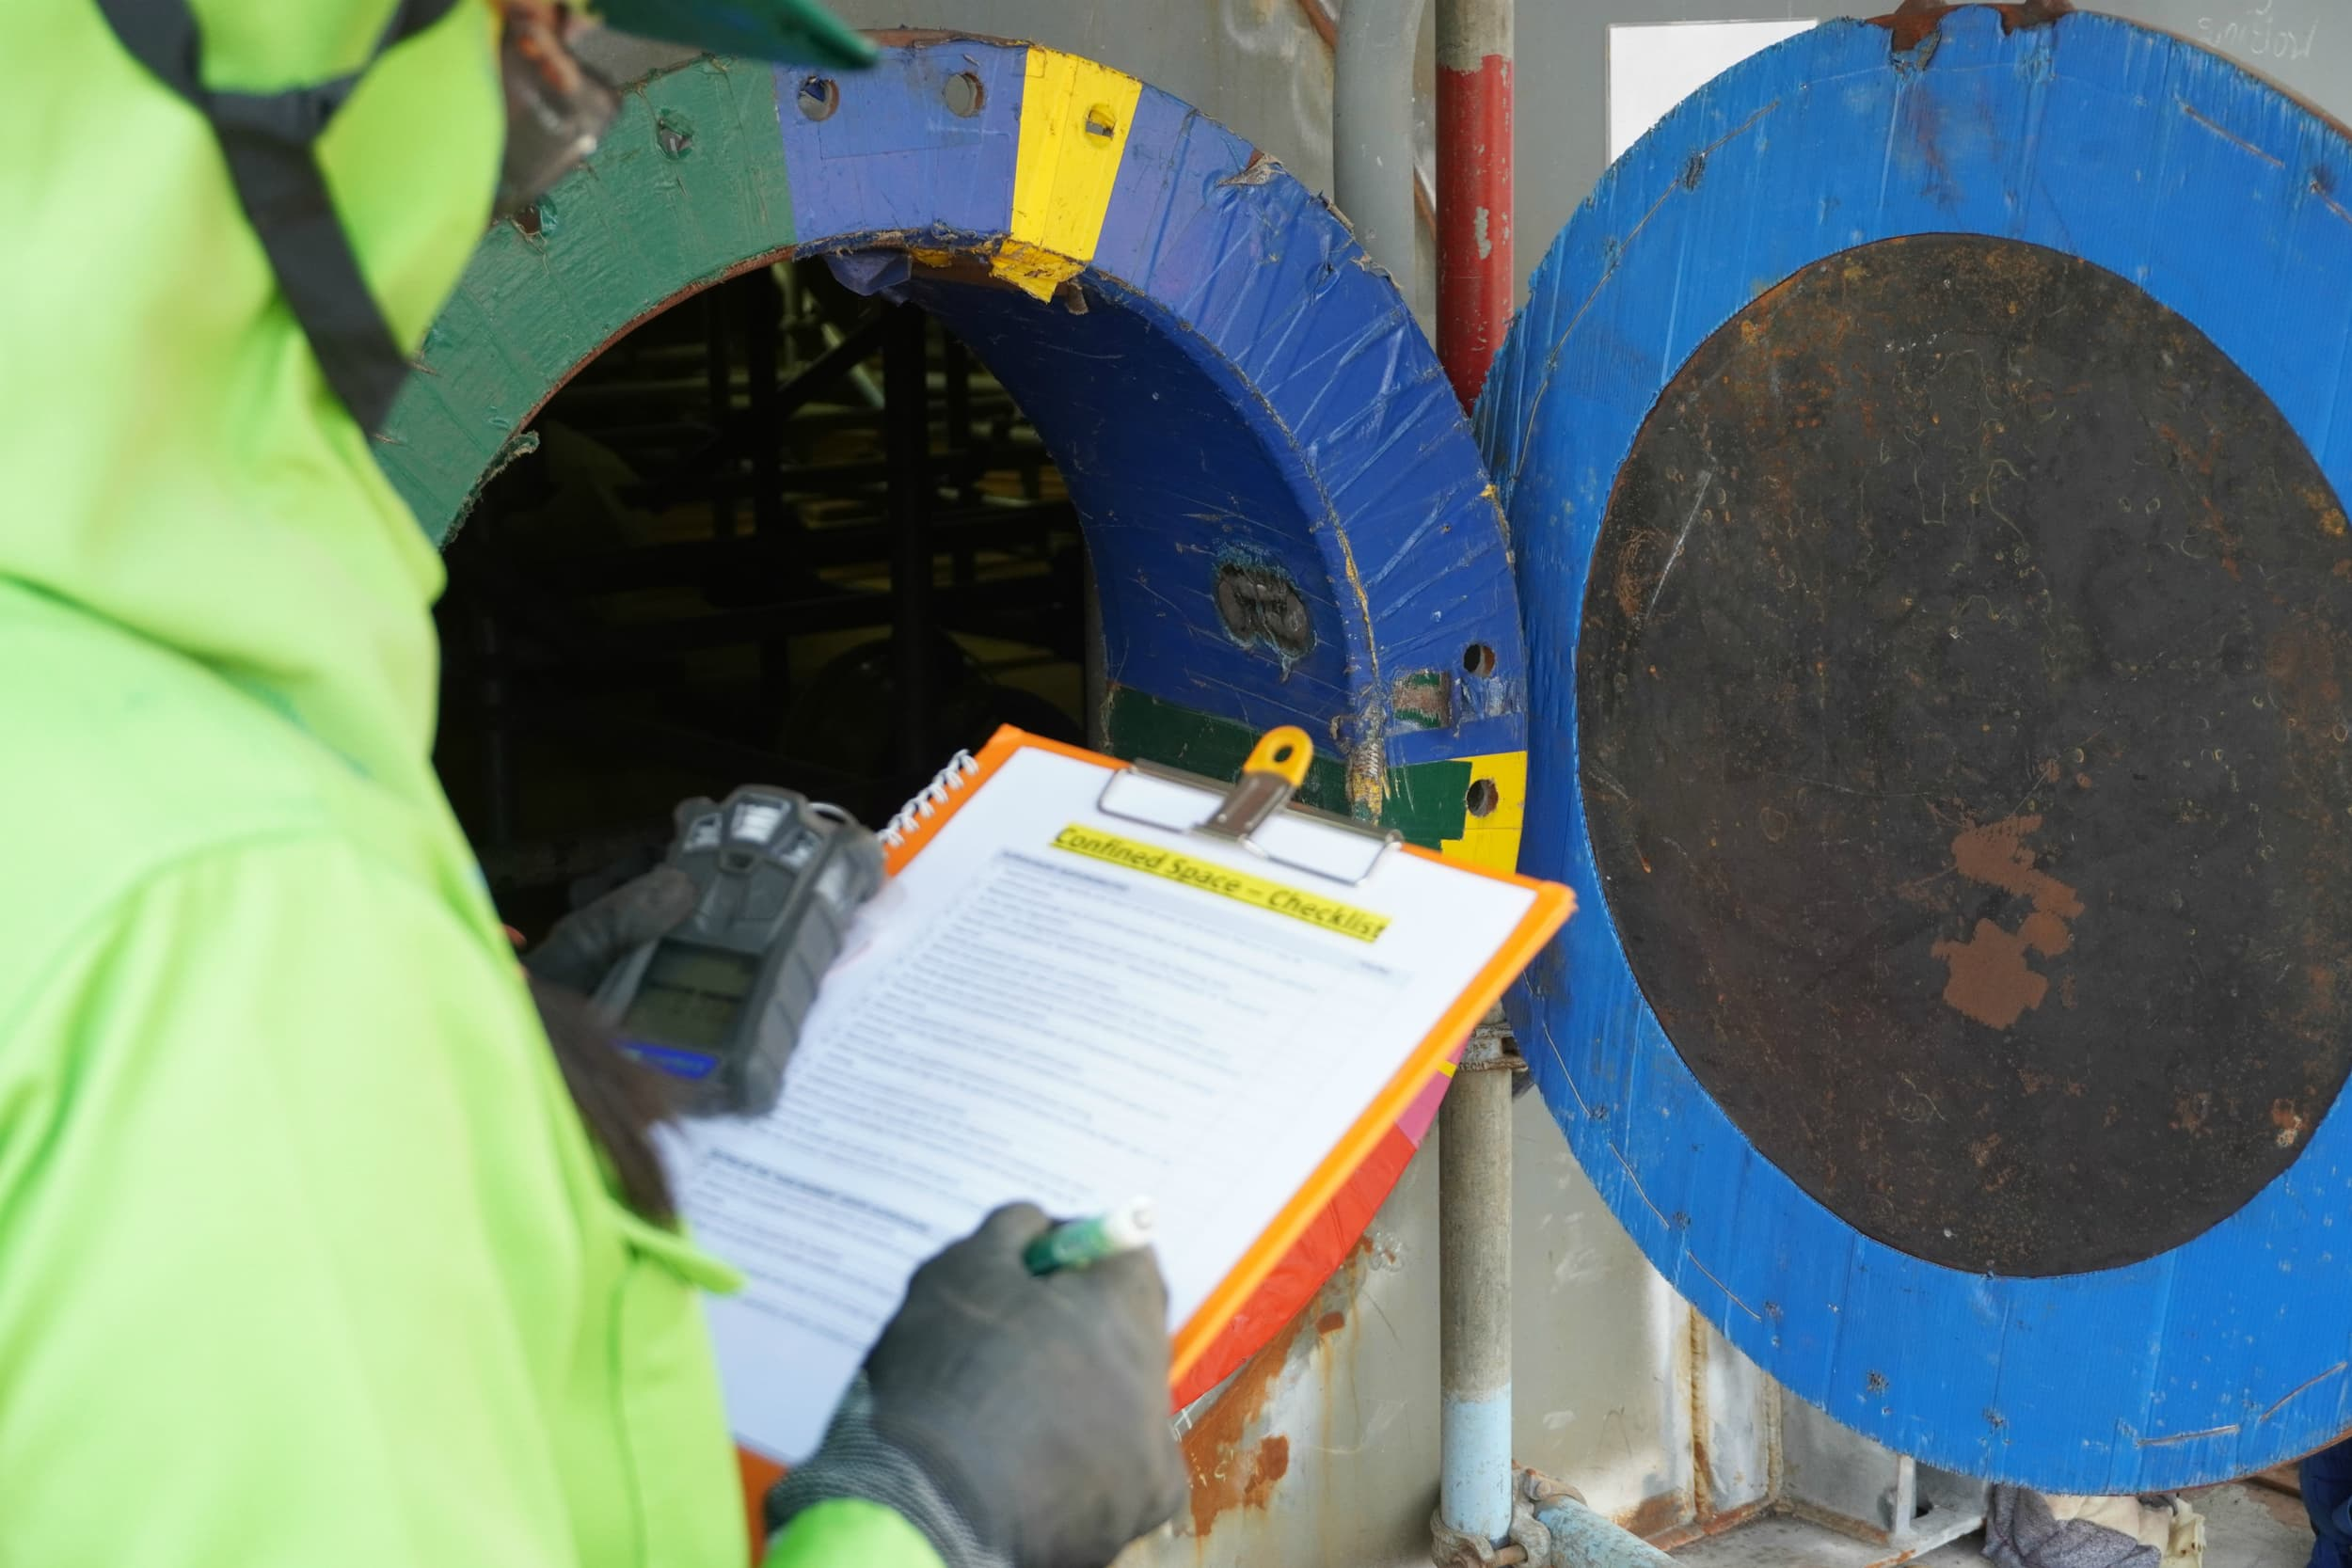 Compliance Training Online Canada Confined Space Competent Person/Supervisor course